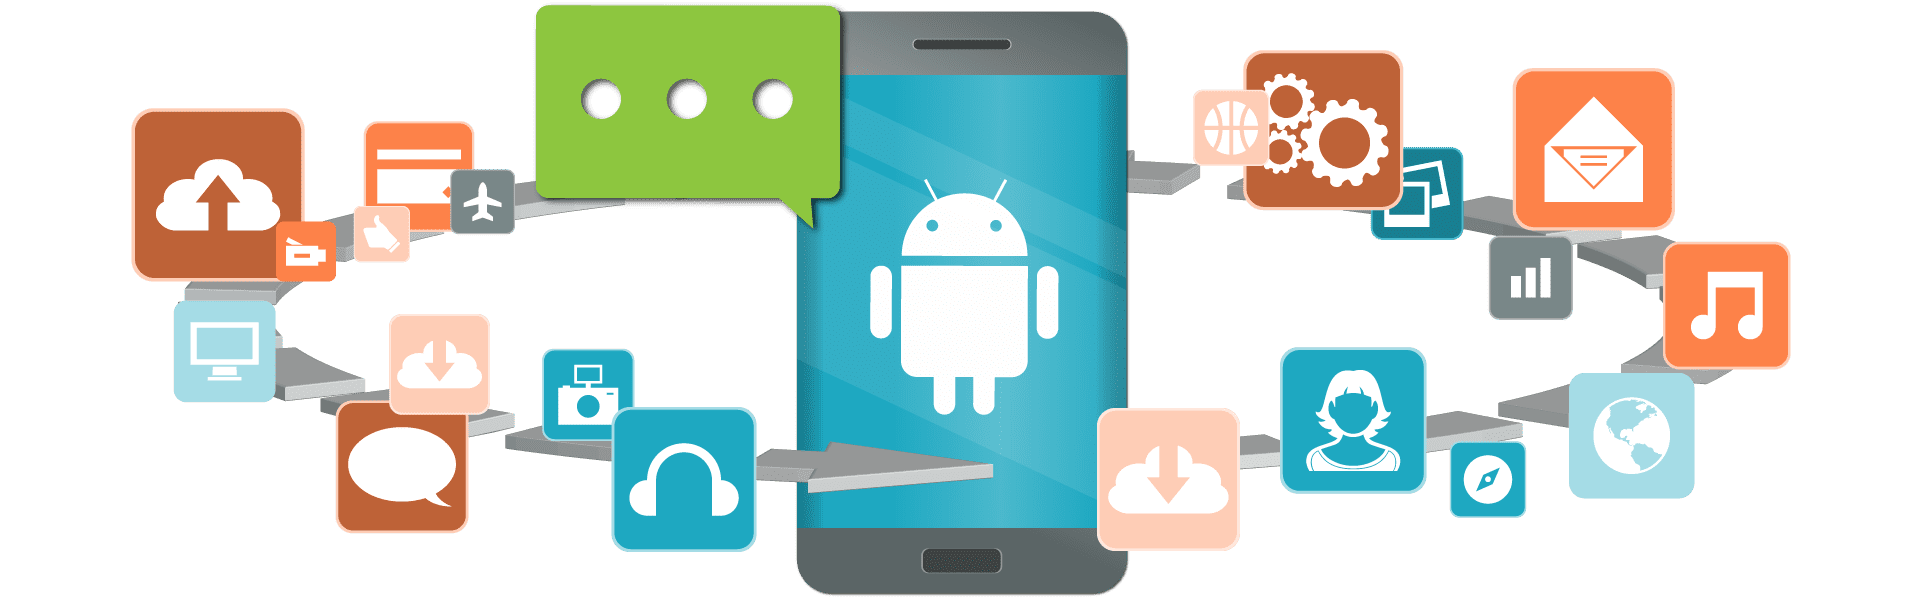 Android application localization - Android app translation service